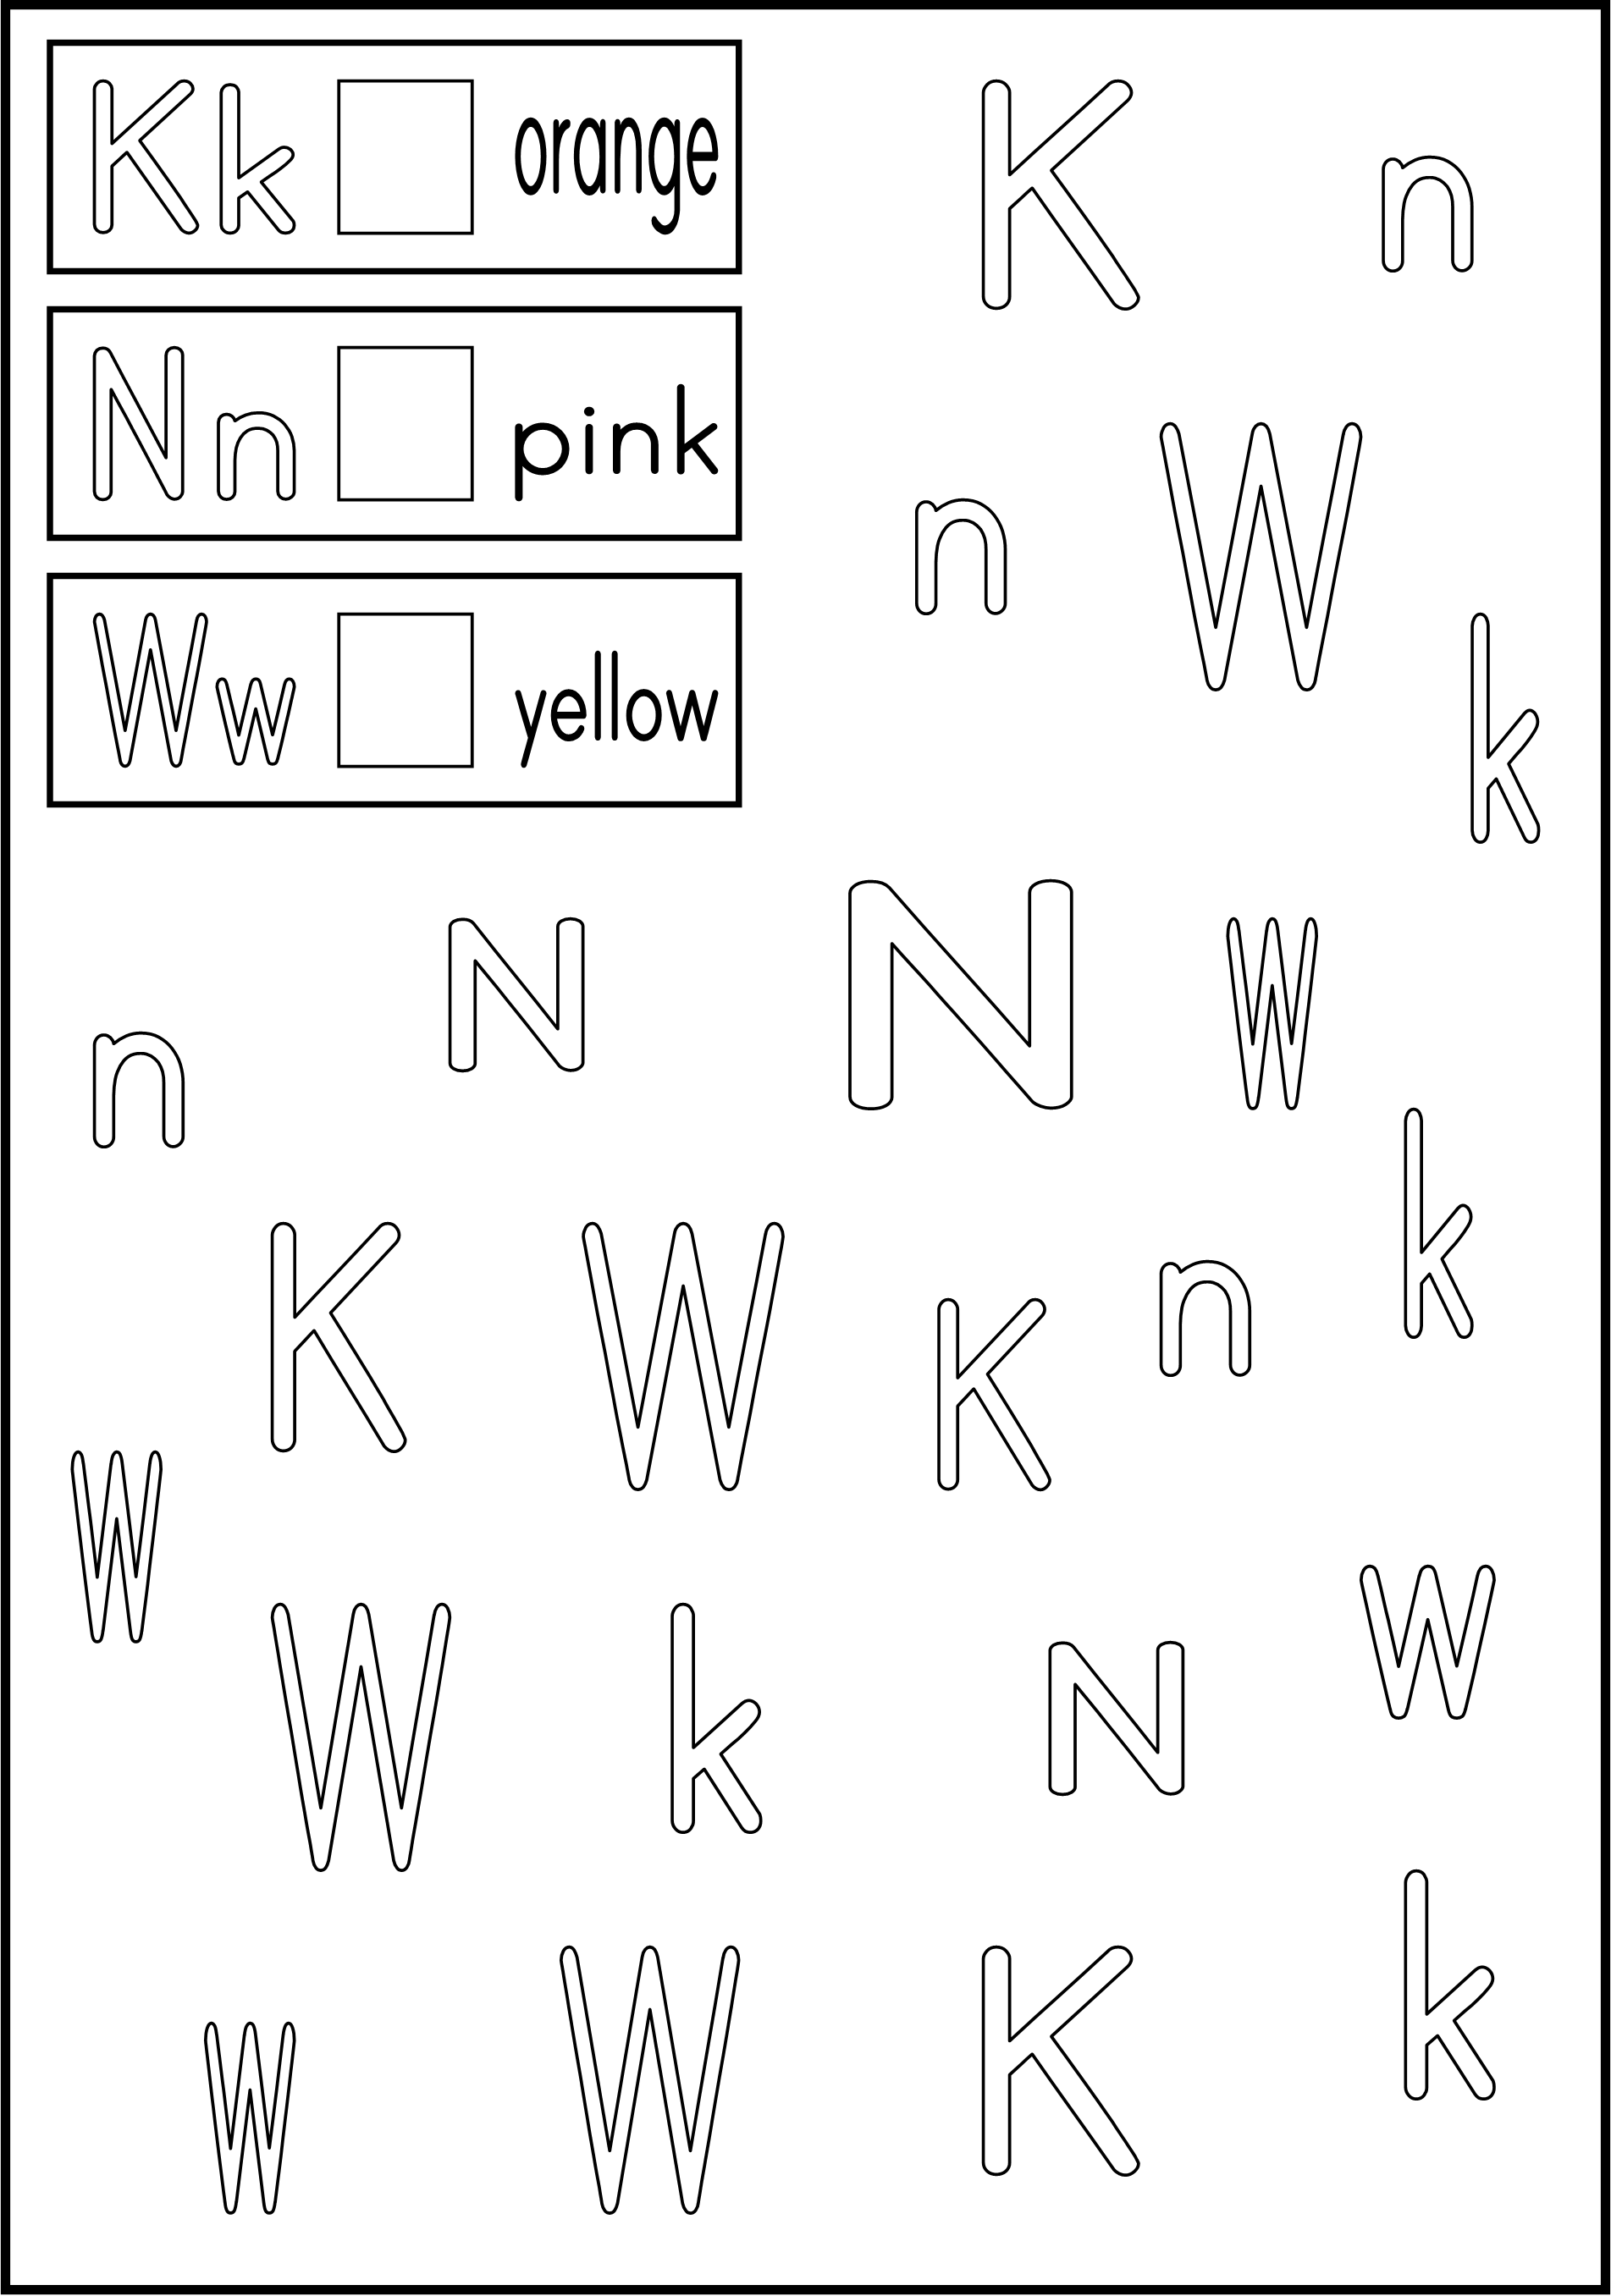 Free Worksheet Kindergarten Letter Recognition Worksheets alphabet activity follow the directions trace within lines worksheets free printable 7 others with different letters on each